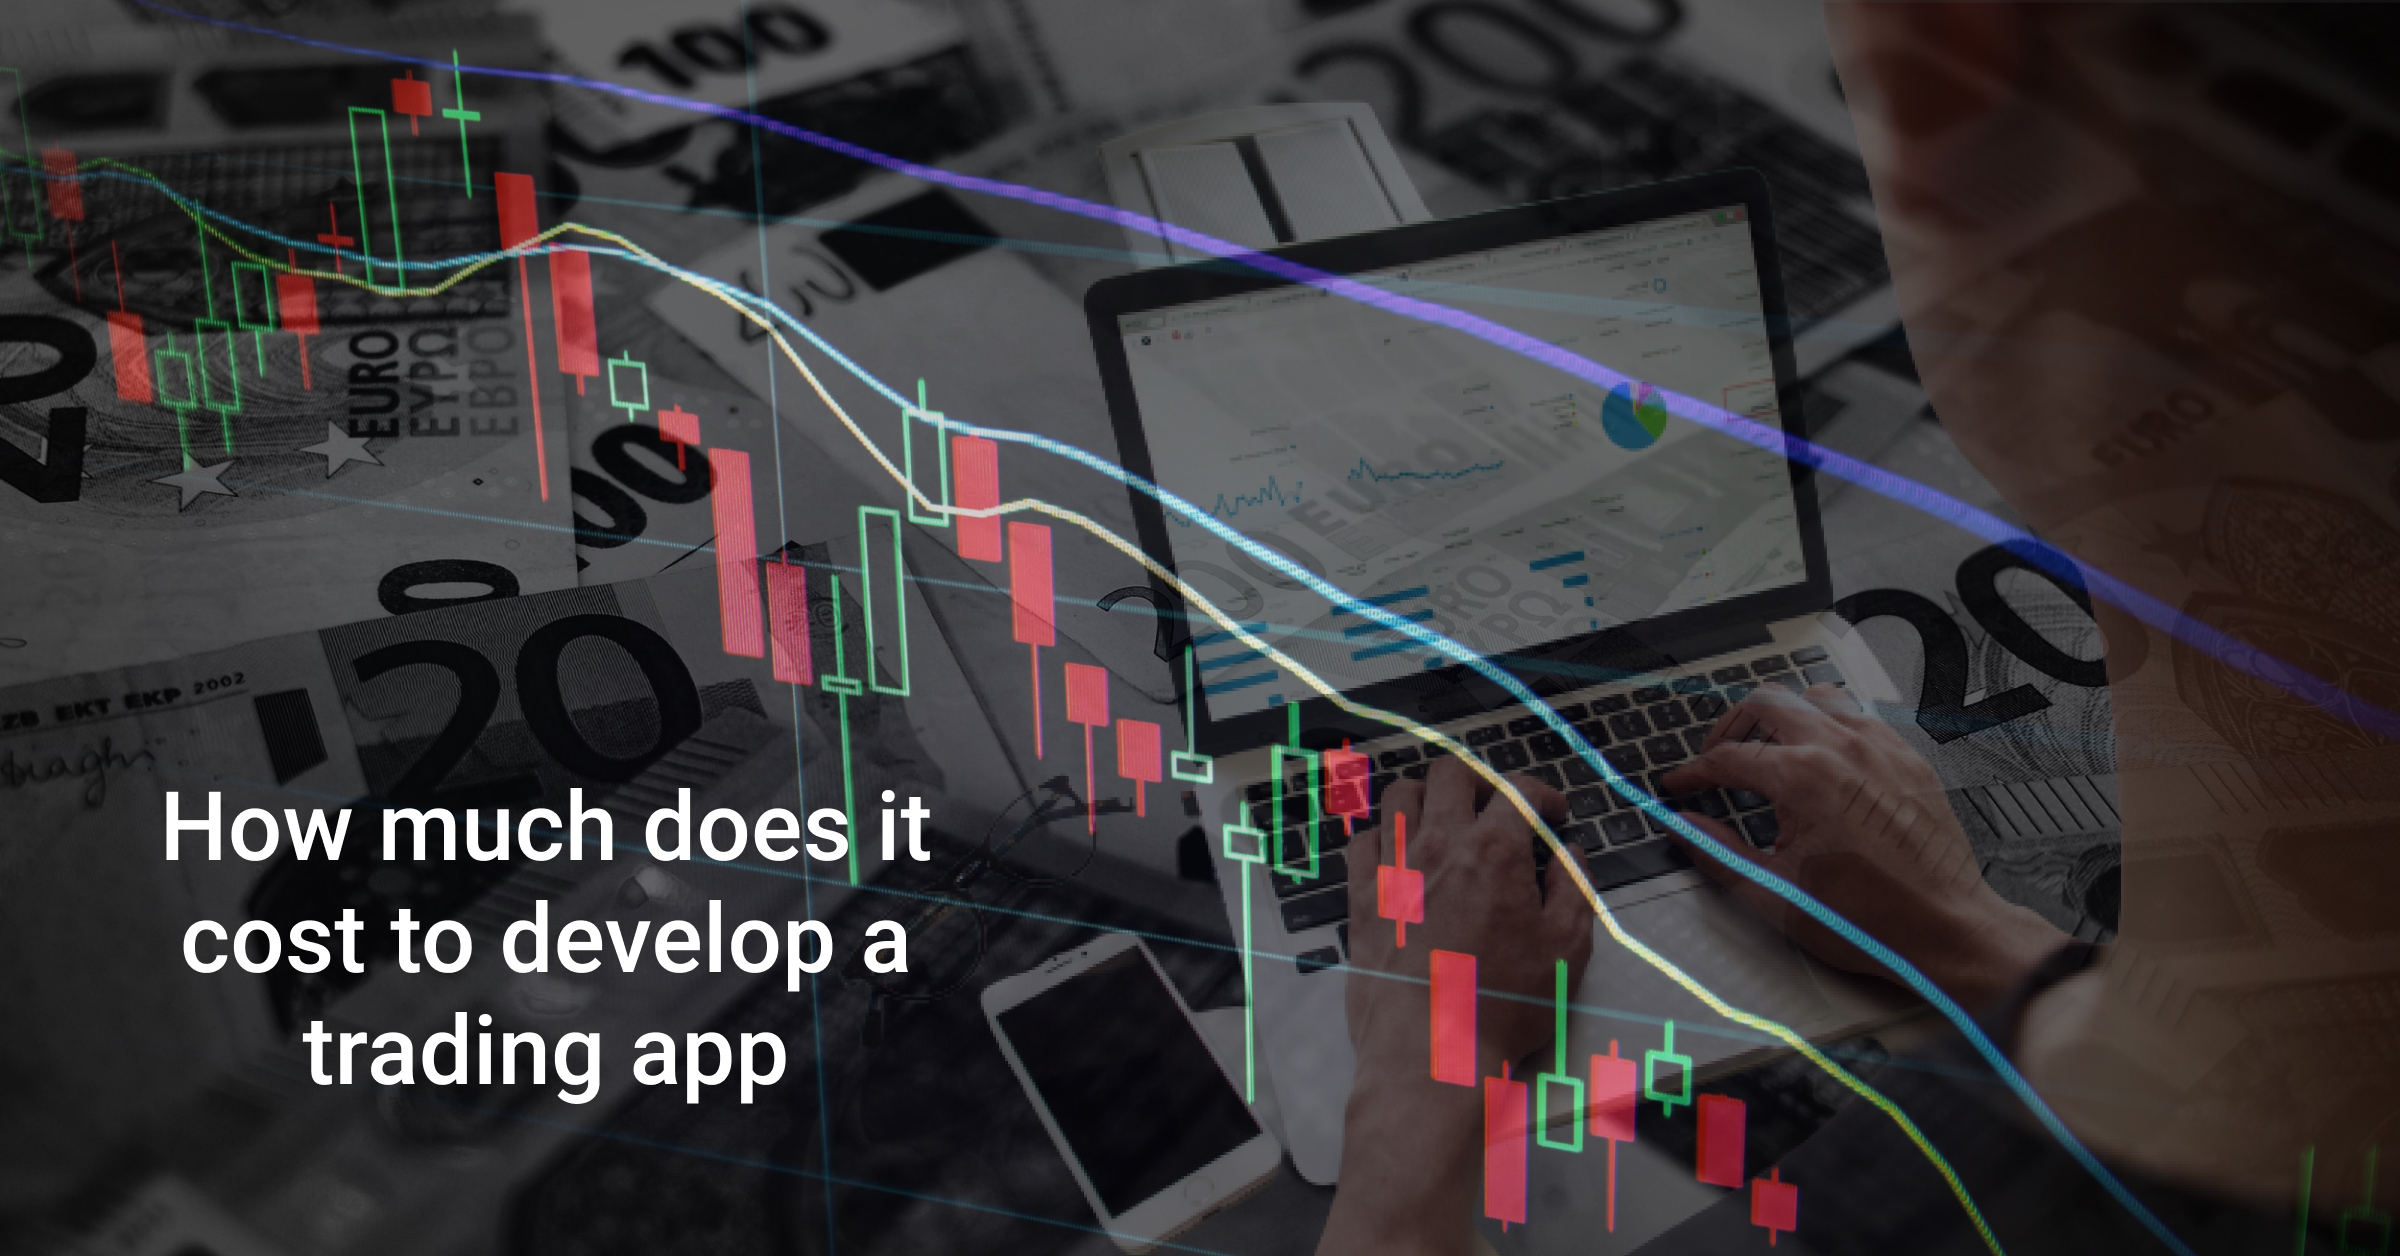 How Much Does It Cost To Build/Develop A Trading App